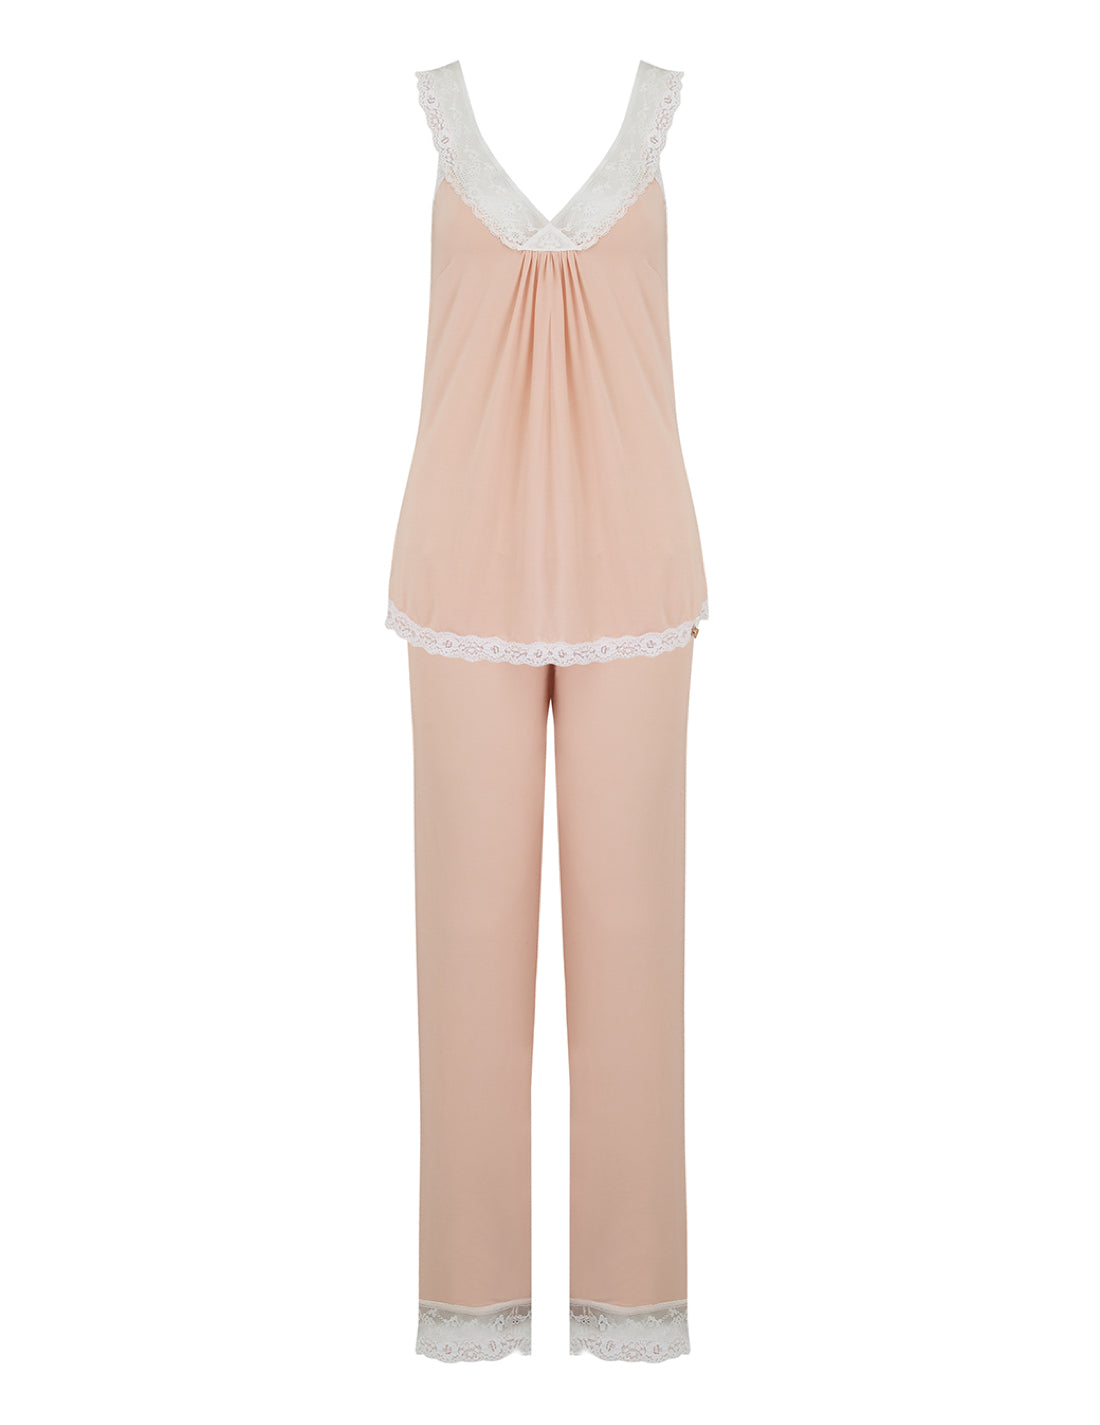 Peaches and Cream Lounge Pants